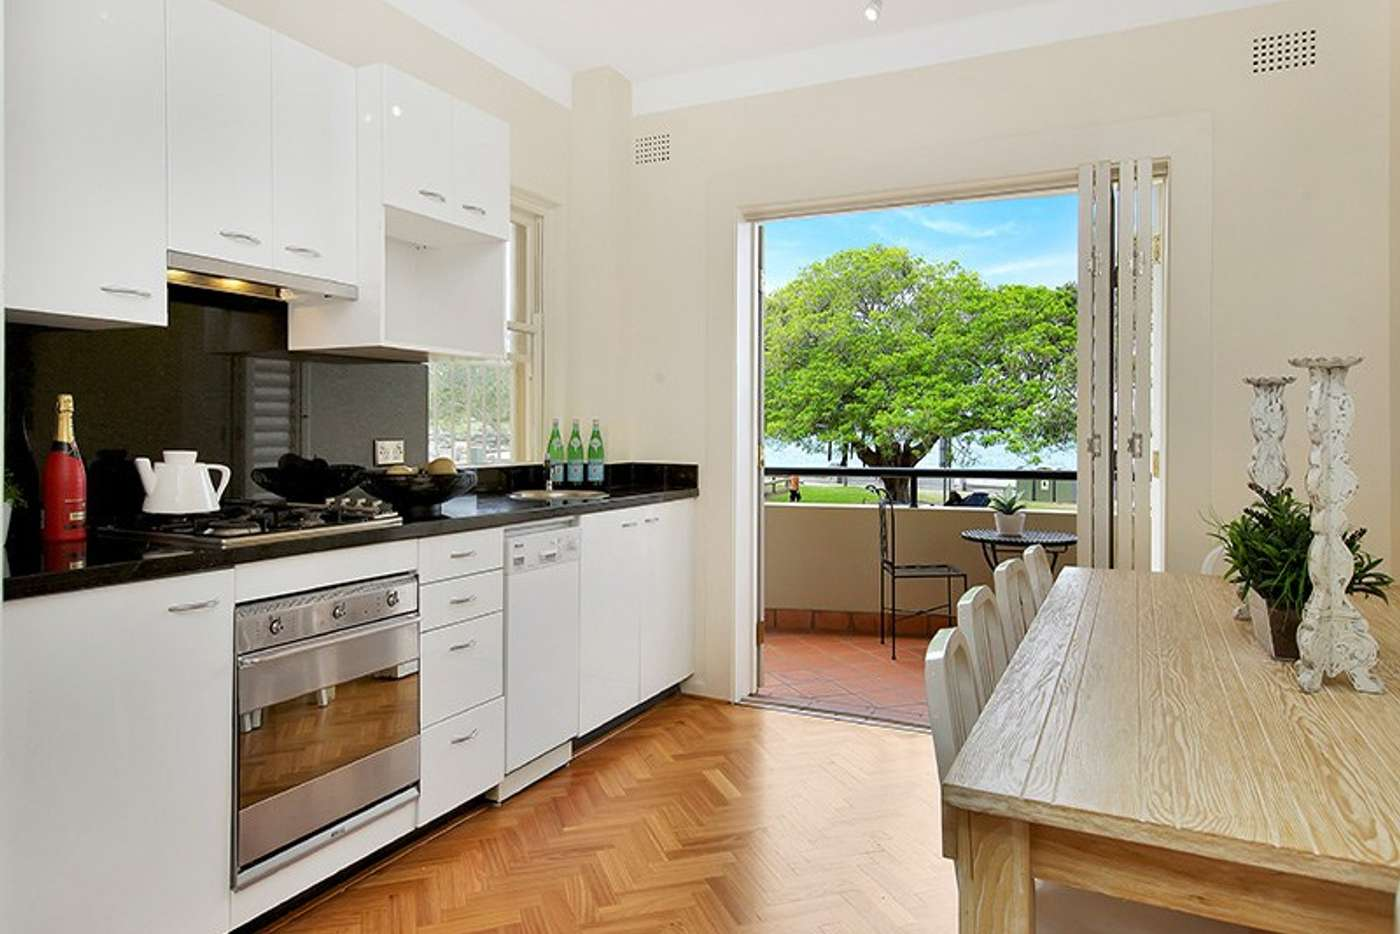 Main view of Homely apartment listing, 2/27 The Esplanade, Mosman NSW 2088